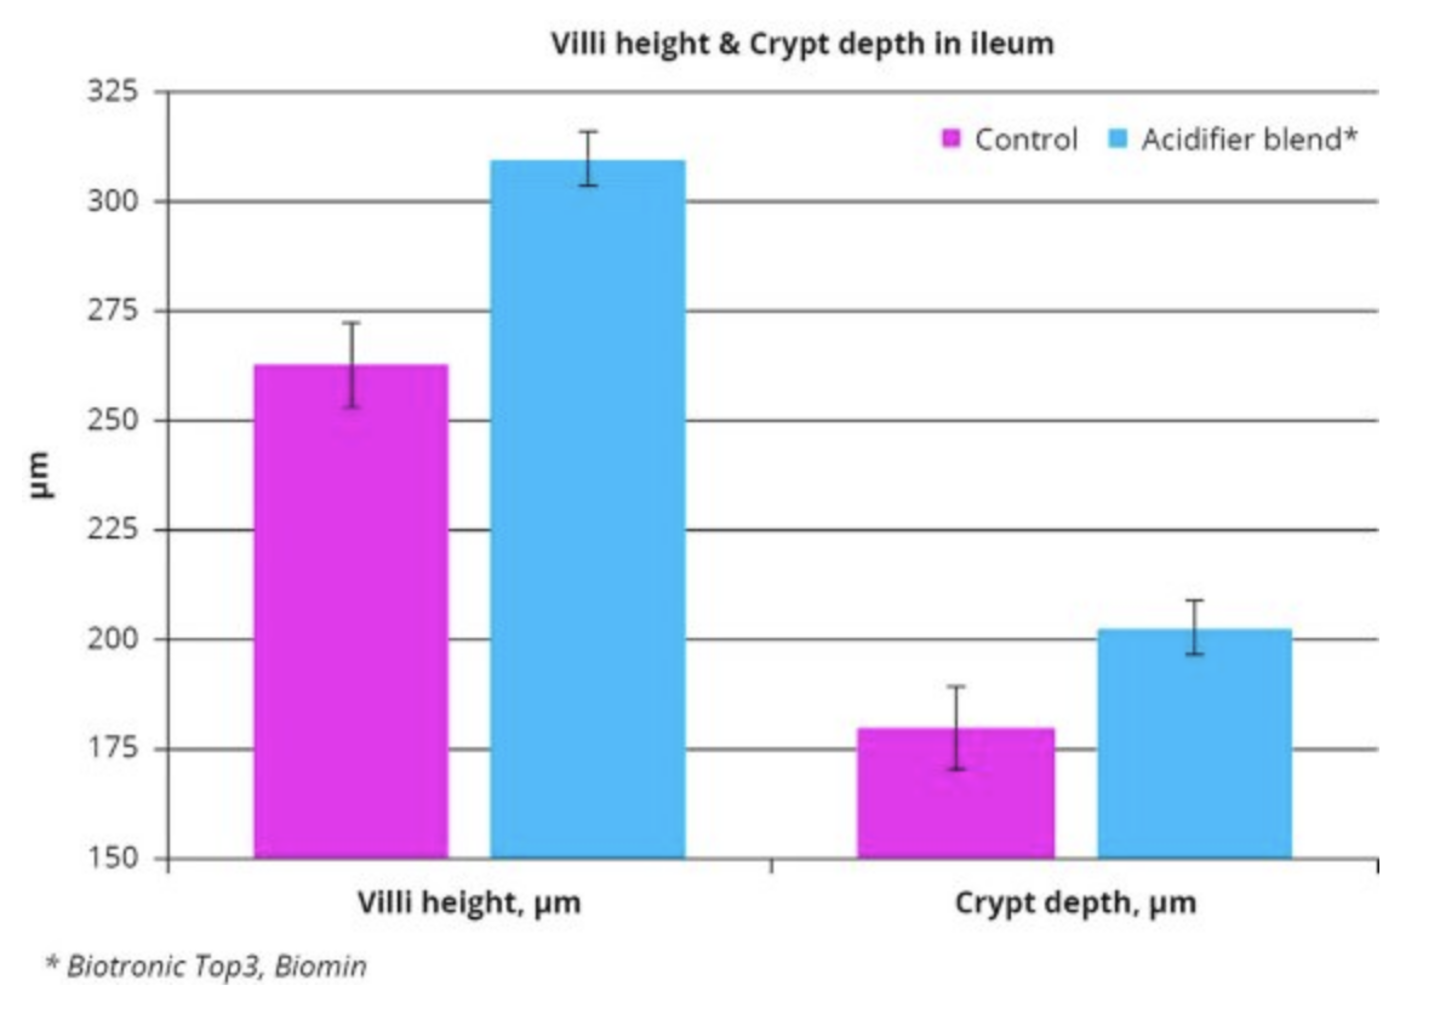 Figure 1 – Ileal villi height and crypt depth of nursery pigs fed an acidifier blend.